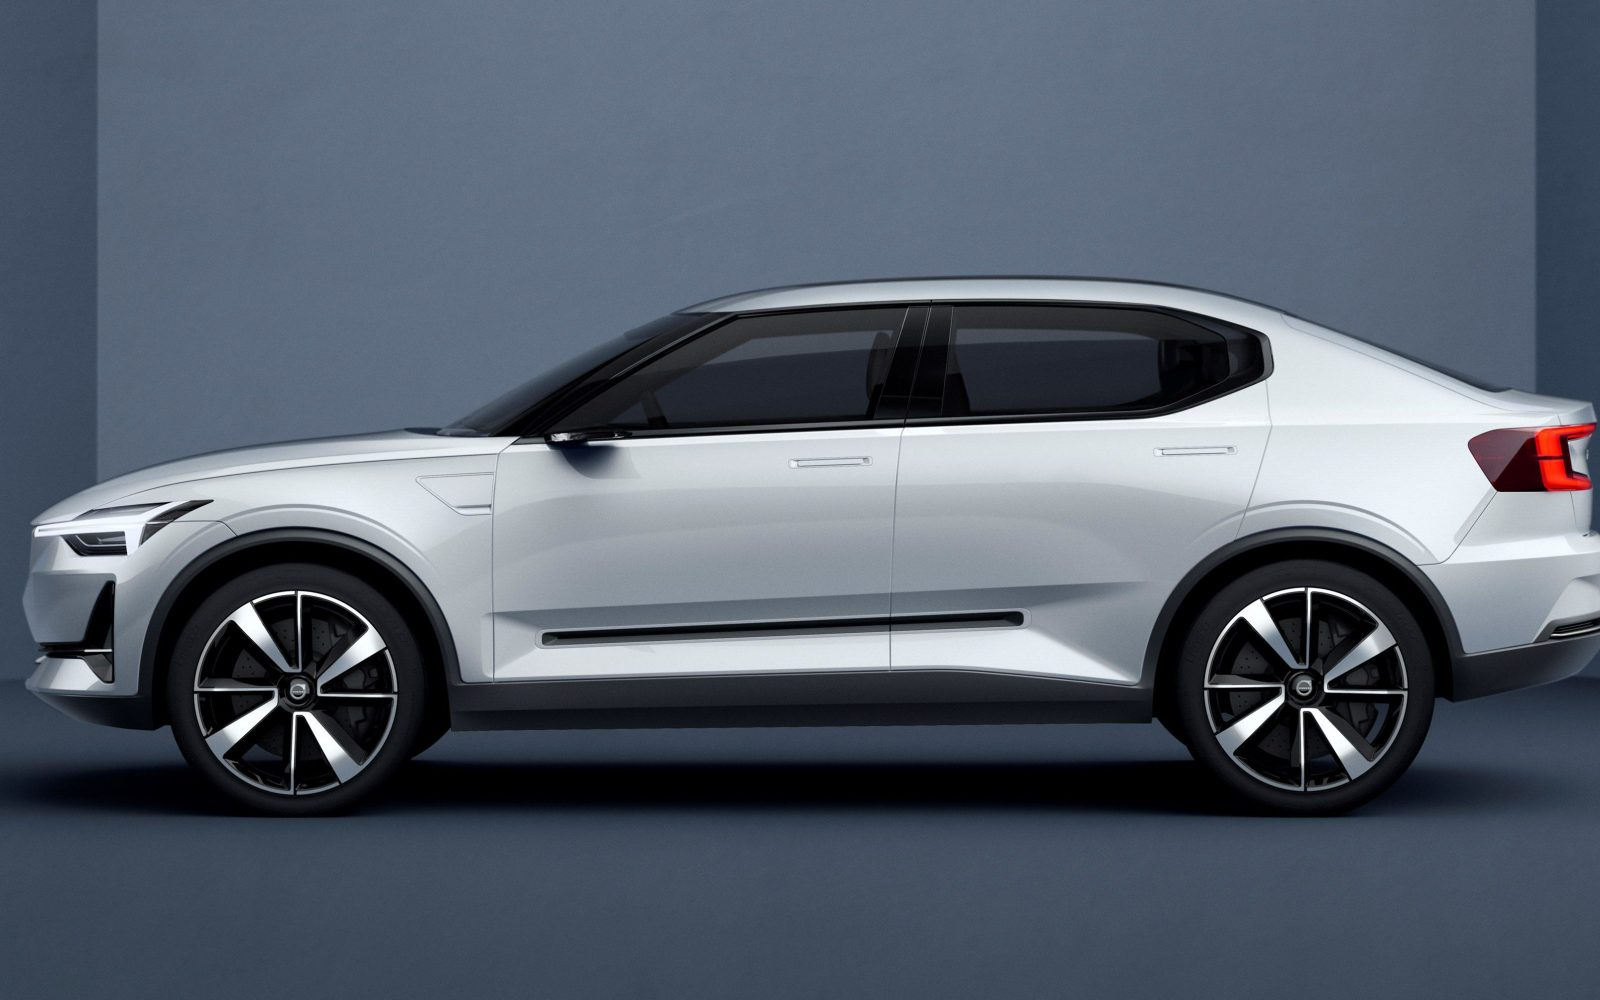 Volvo says its first all-electric vehicle is coming in 2019 with battery packs up to 100 kWh